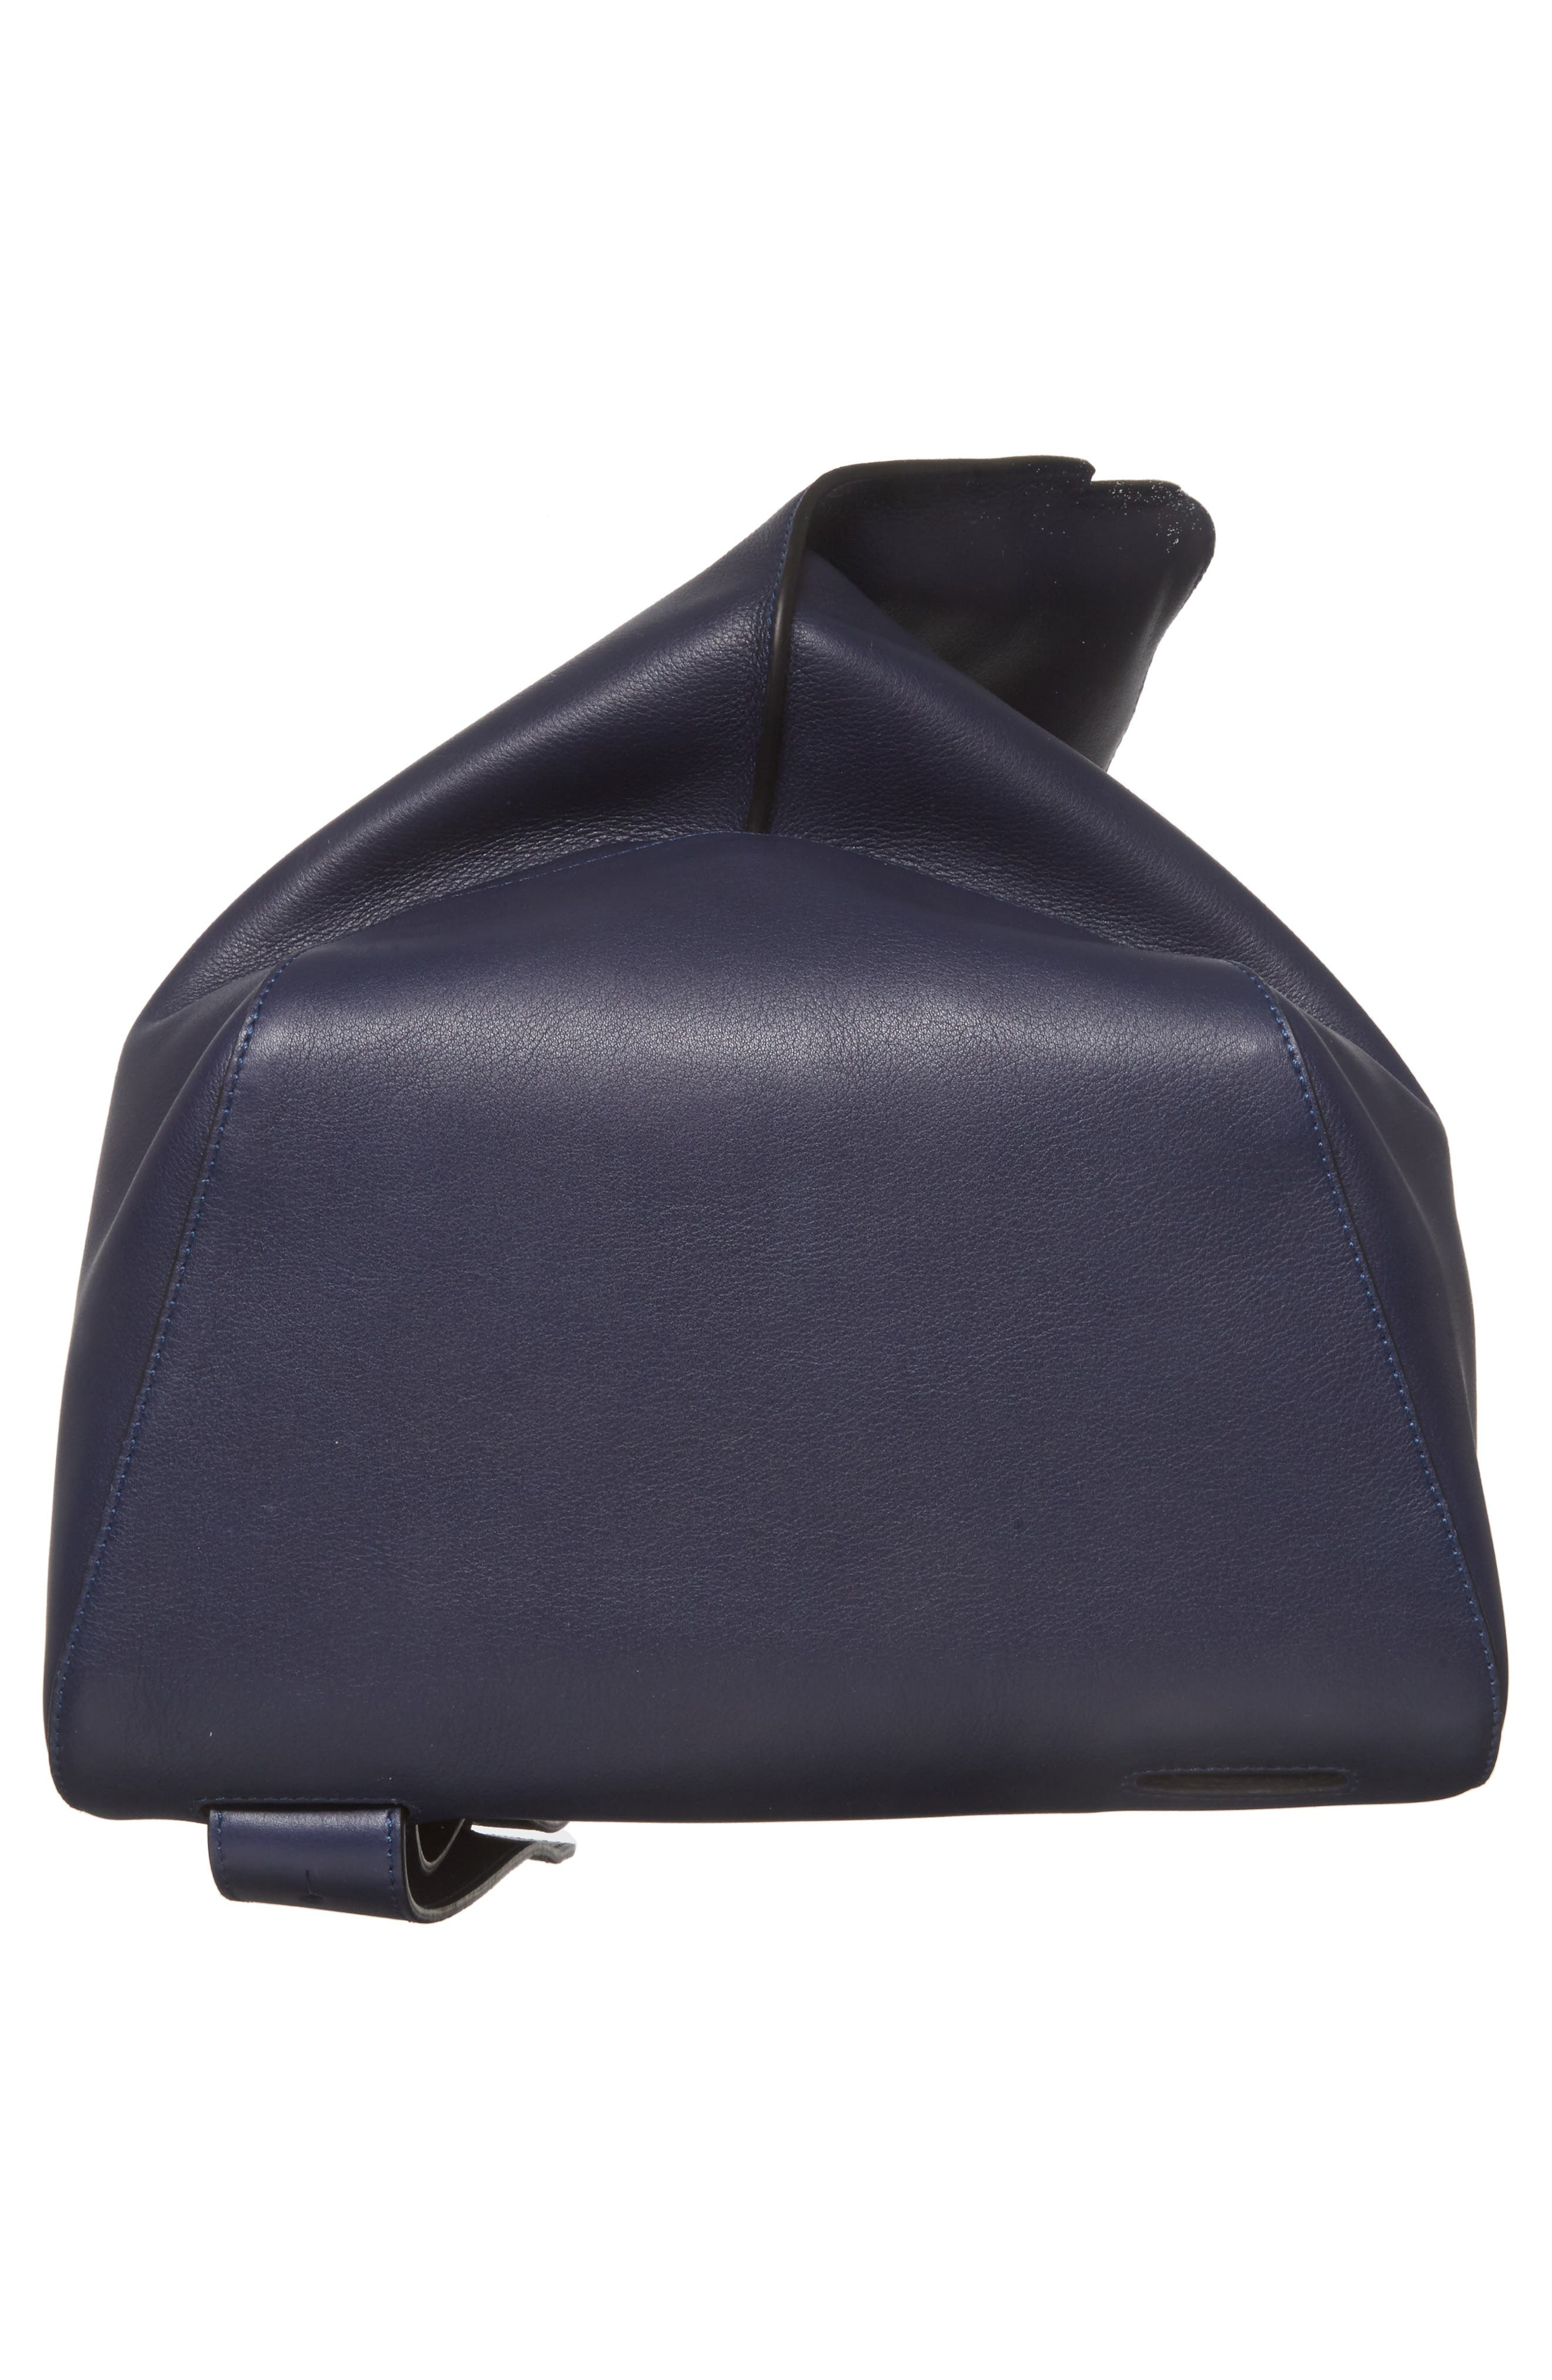 Anton Leather Sling Pack,                             Alternate thumbnail 6, color,                             Navy Blue